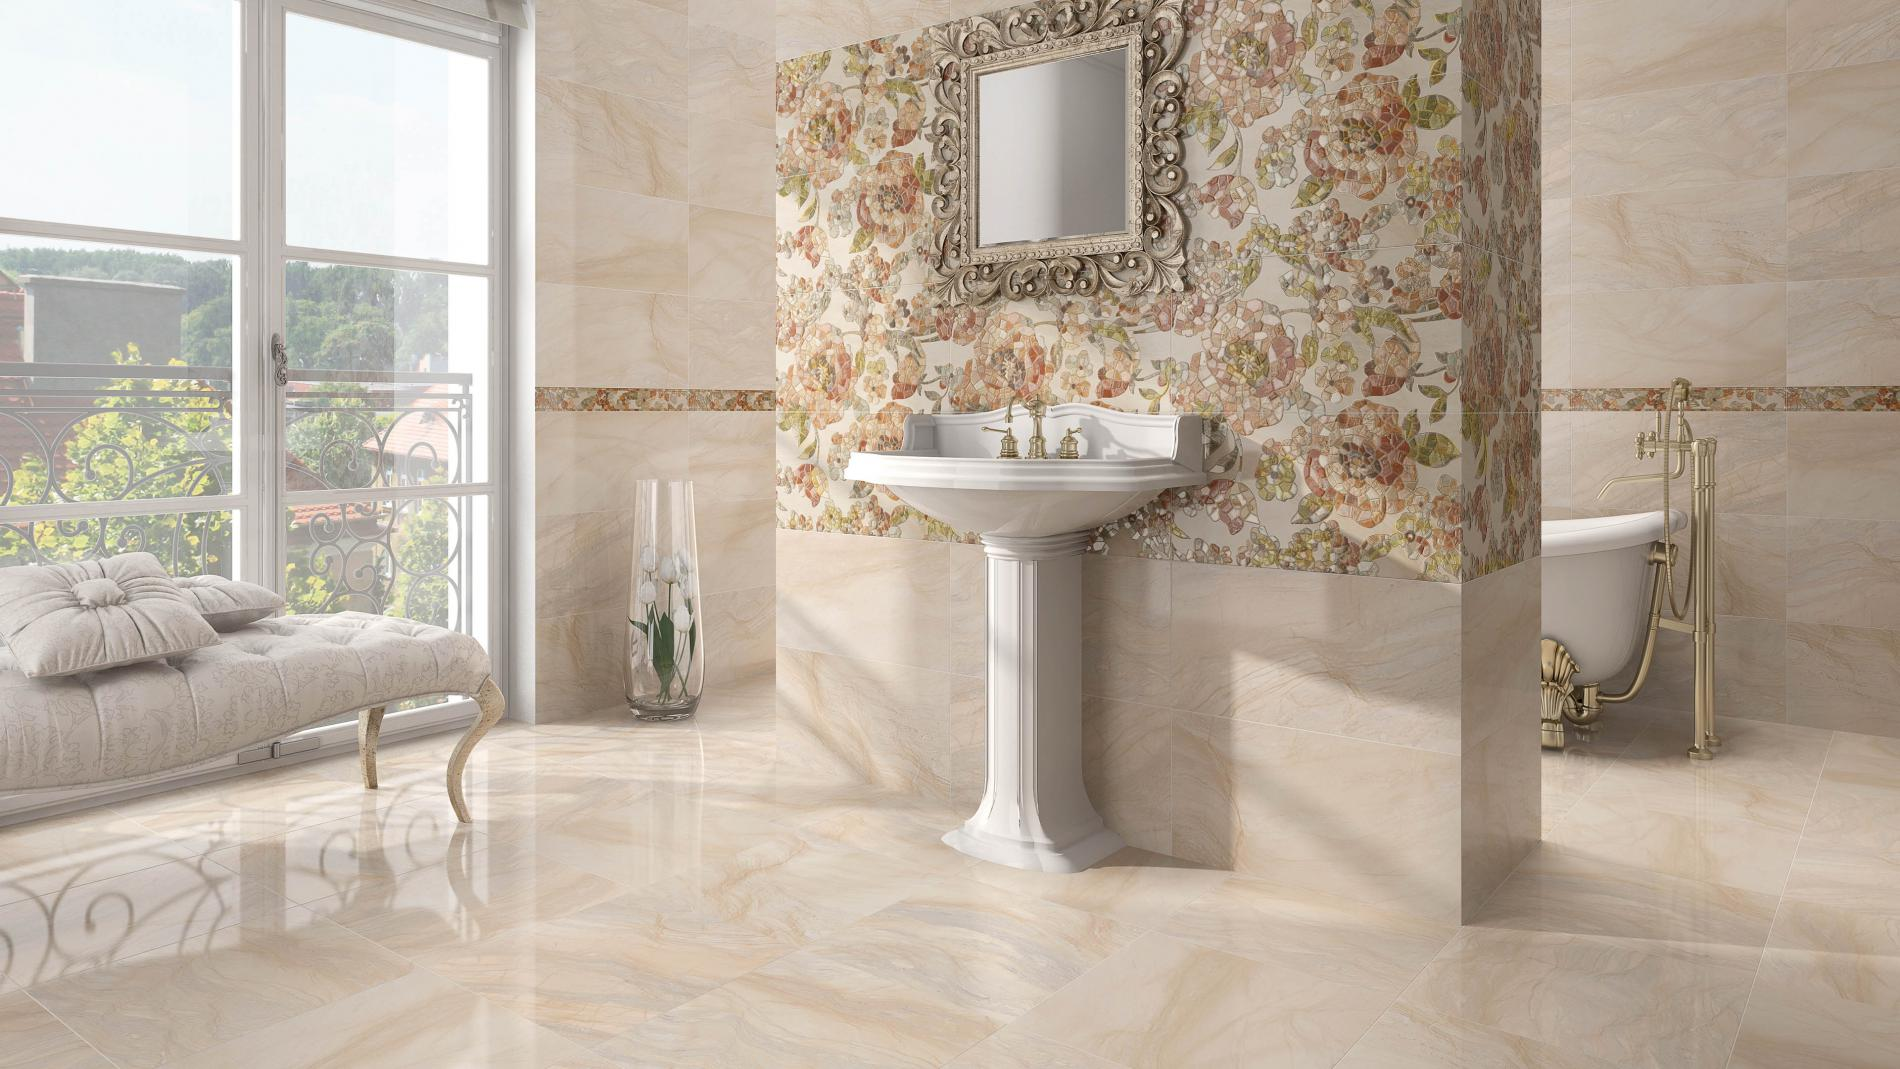 pam1900x232 Tiles dublin waterloo bathrooms commercial contracts ireland supply and fit luxury.jpg